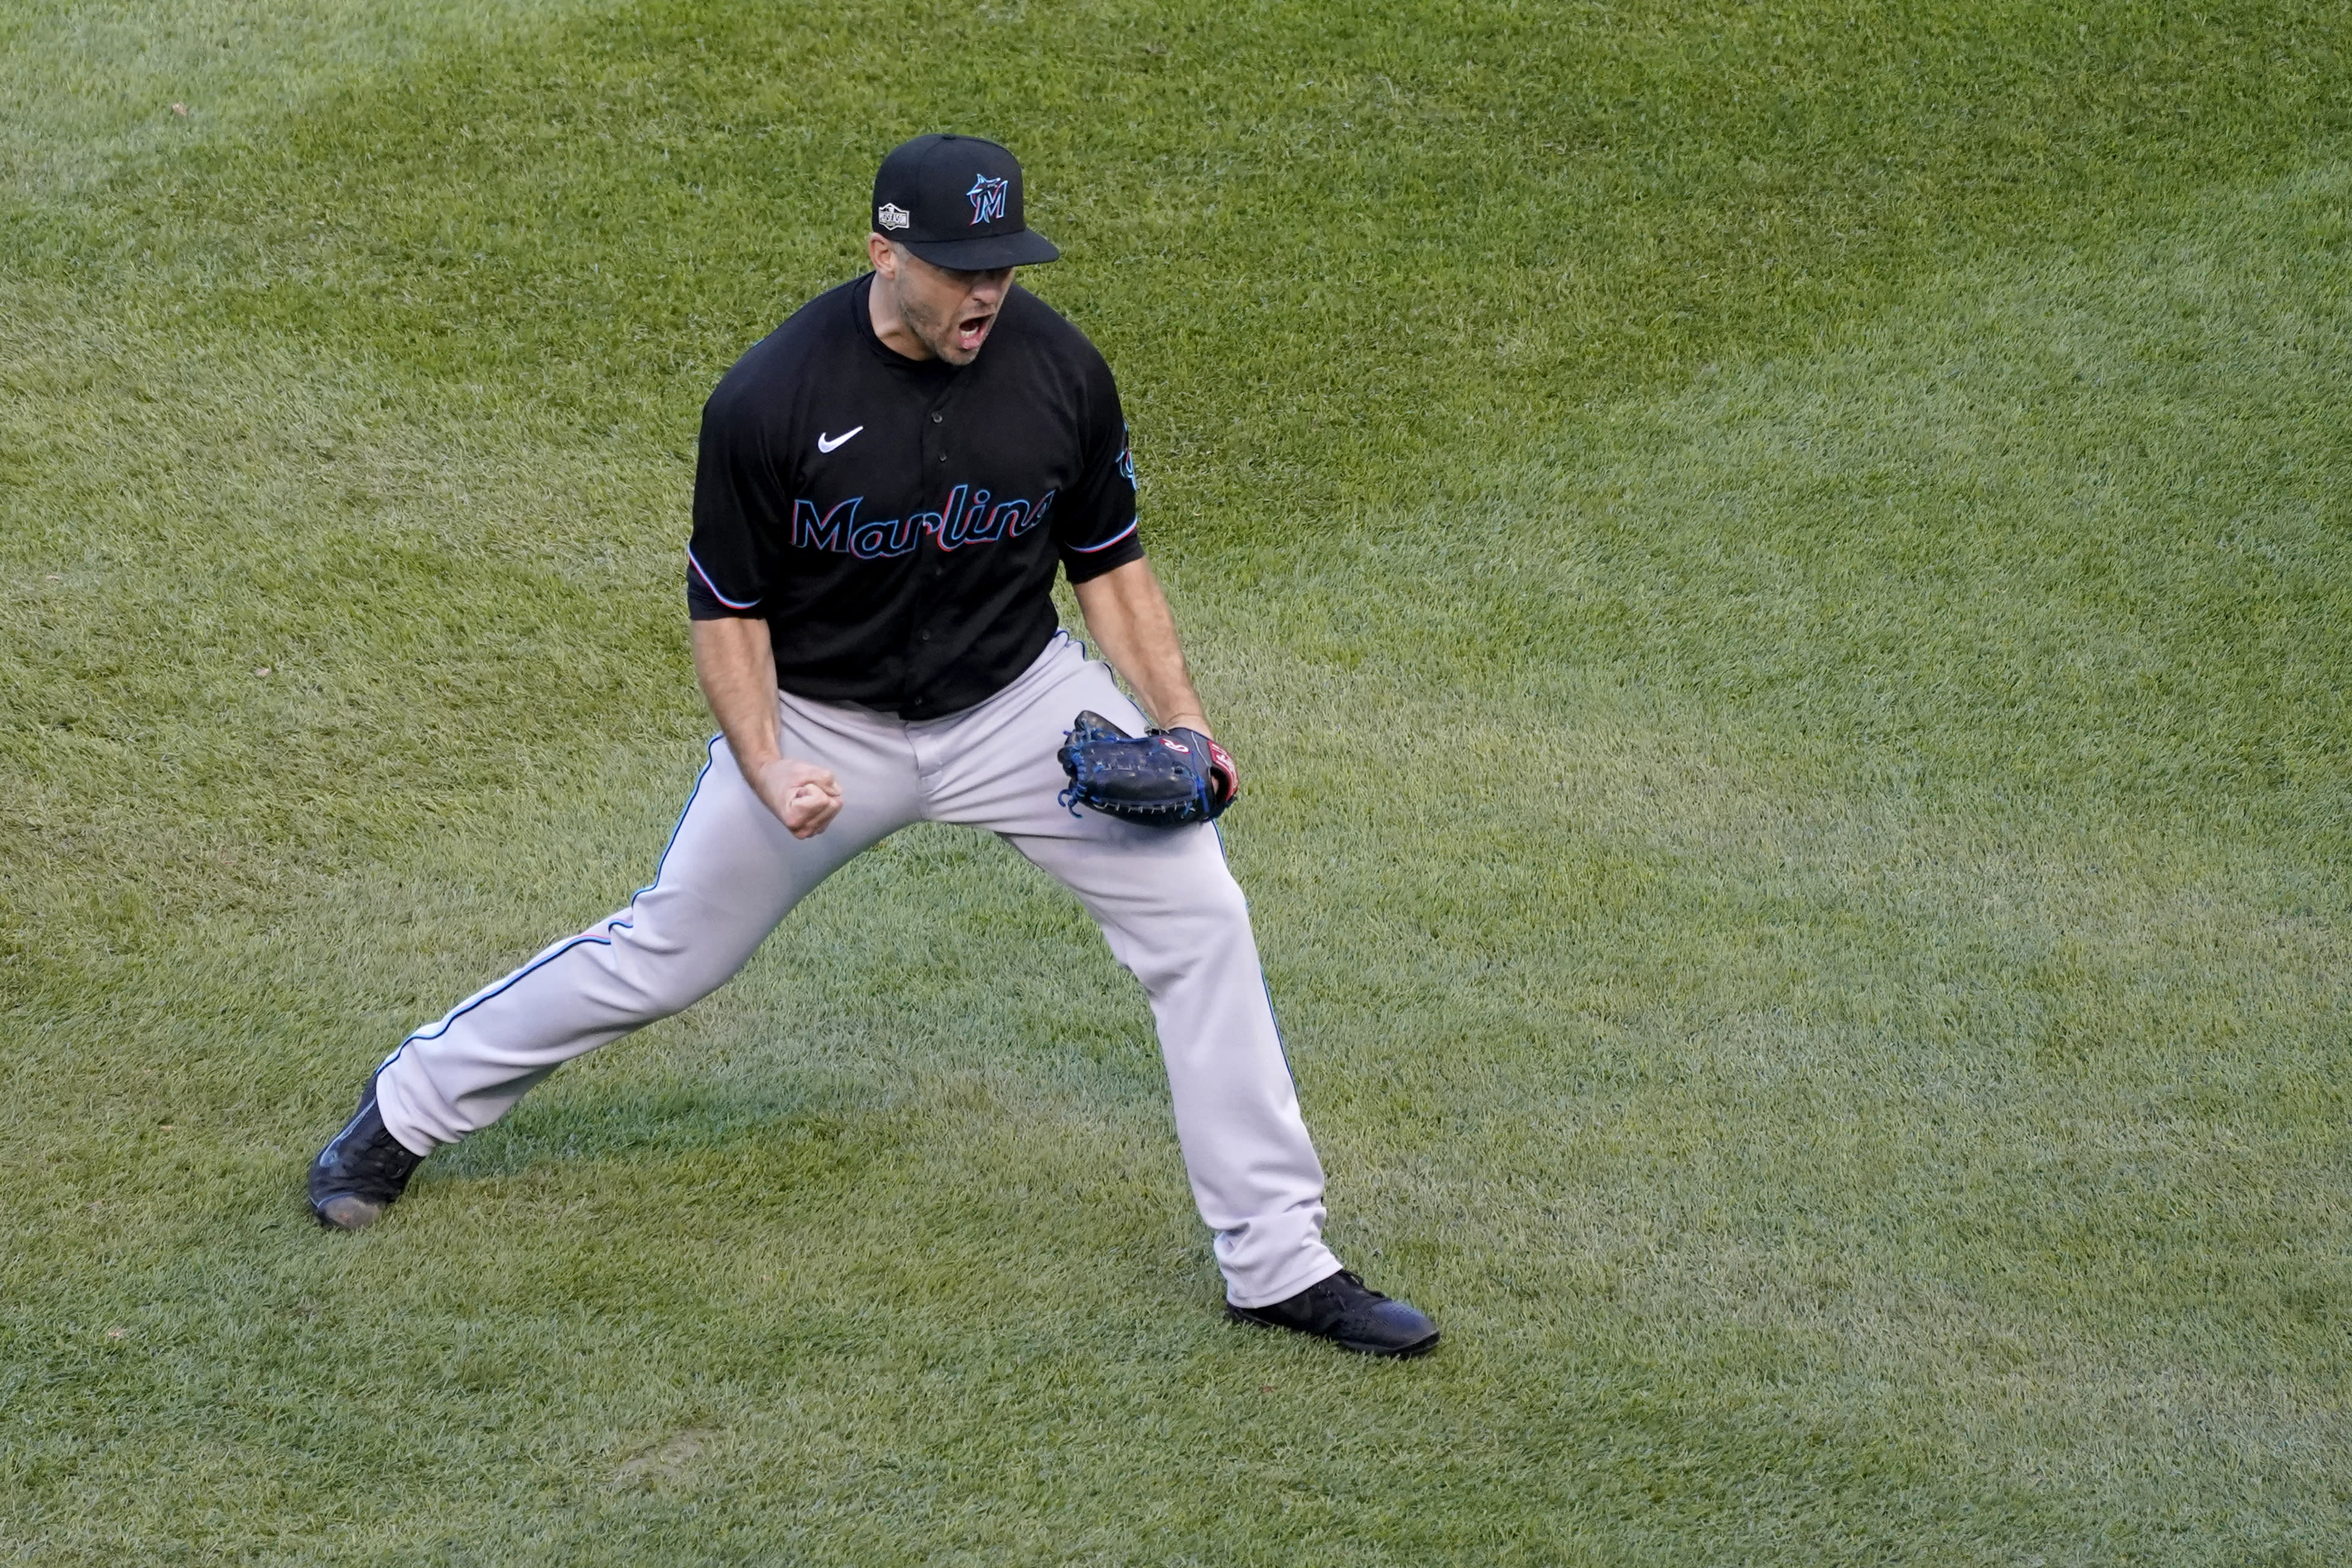 Miami Marlins relief pitcher Brandon Kintzler celebrates a 2-0 victory over the Chicago Cubs in Game 2 of a National League wild-card baseball series Friday, Oct. 2, 2020, in Chicago. The Marlins won the series 2-0 to advance to the division series. (AP Photo/Nam Y. Huh)